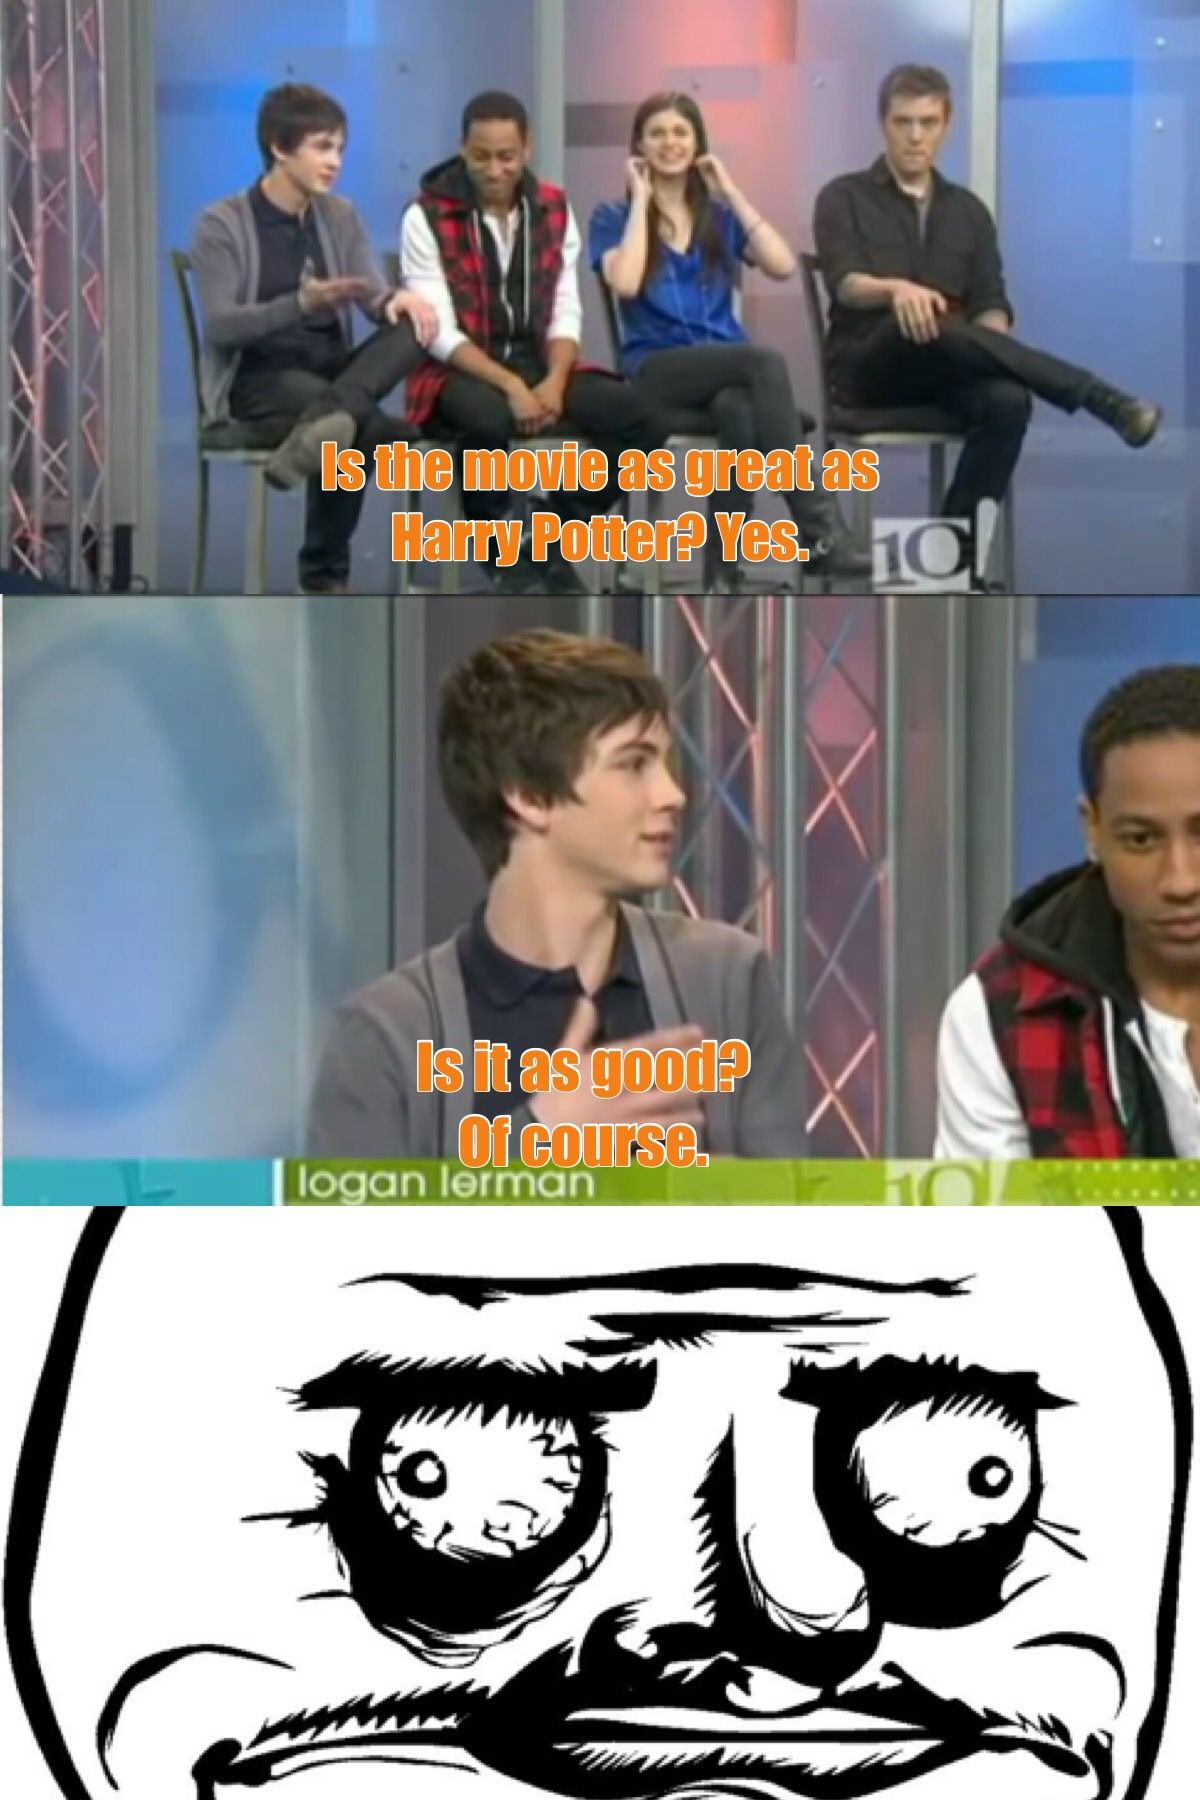 Ding Dong You Are Wrong Percy Jackson Funny Percy Jackson Memes Percy Jackson Fandom